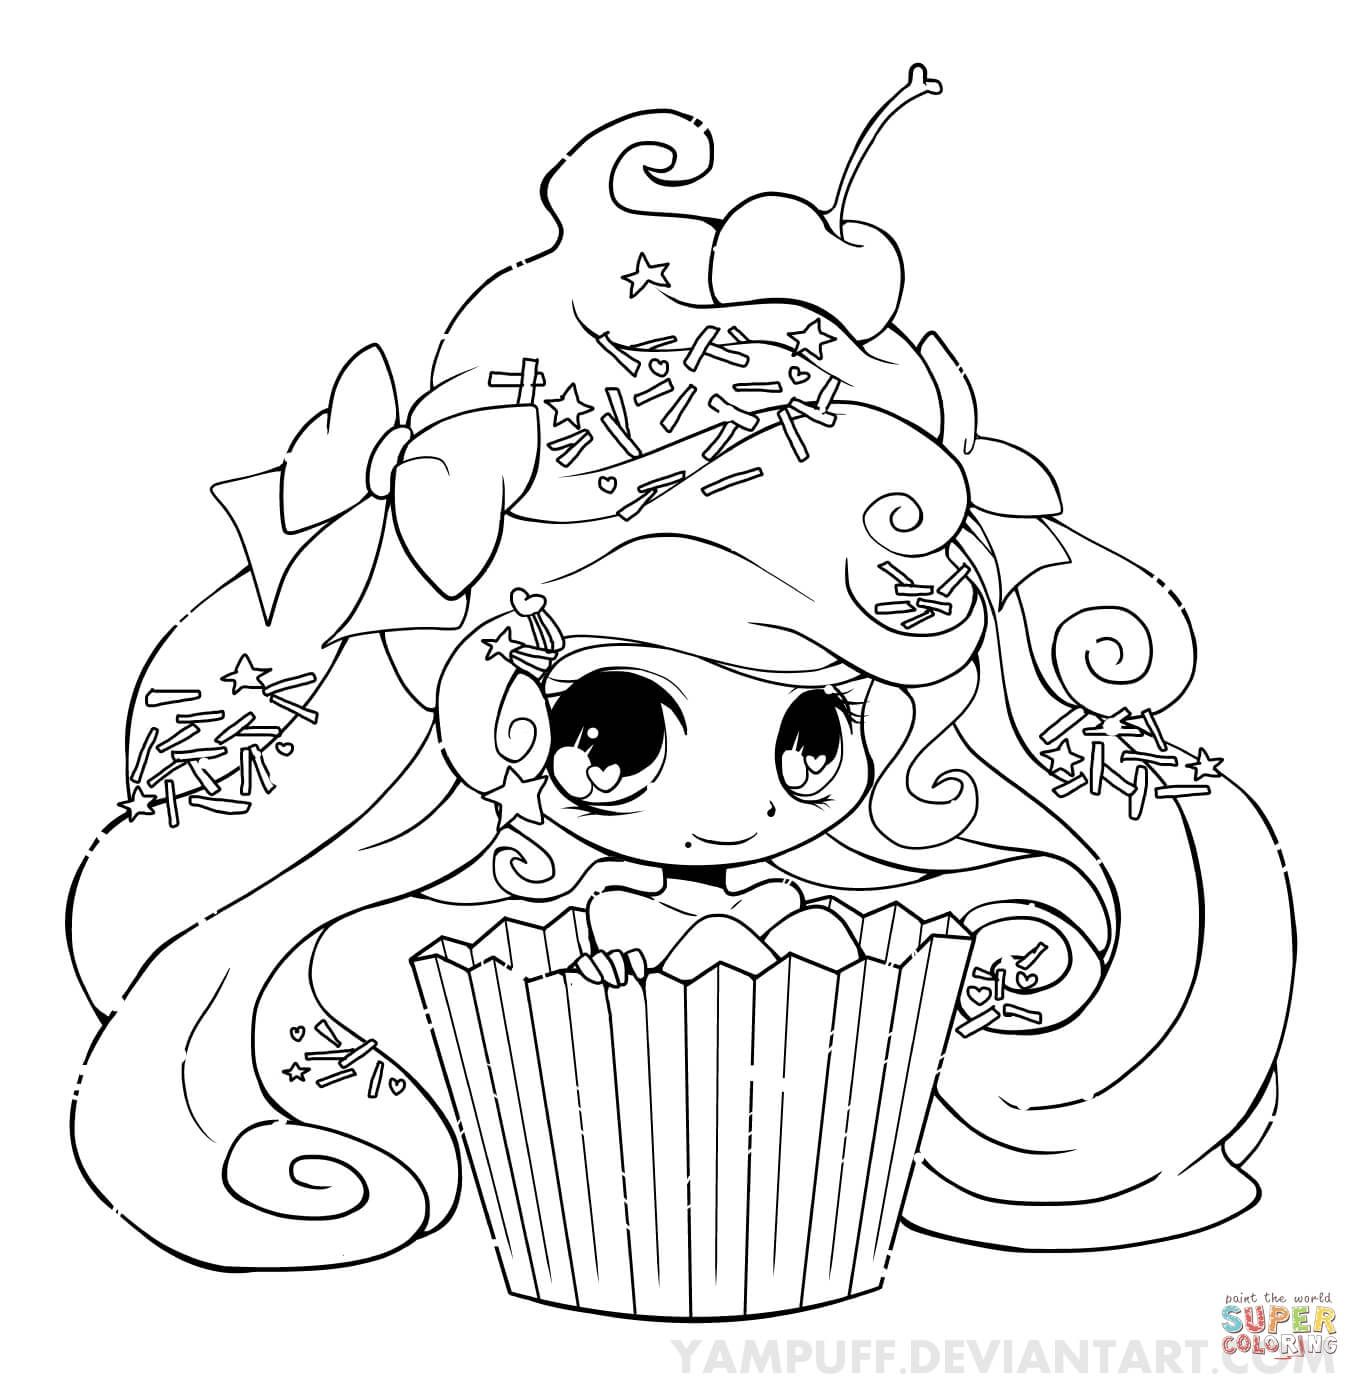 Chibi Cupcake Girl coloring page from Anime Girls category Select from 27278 printable crafts